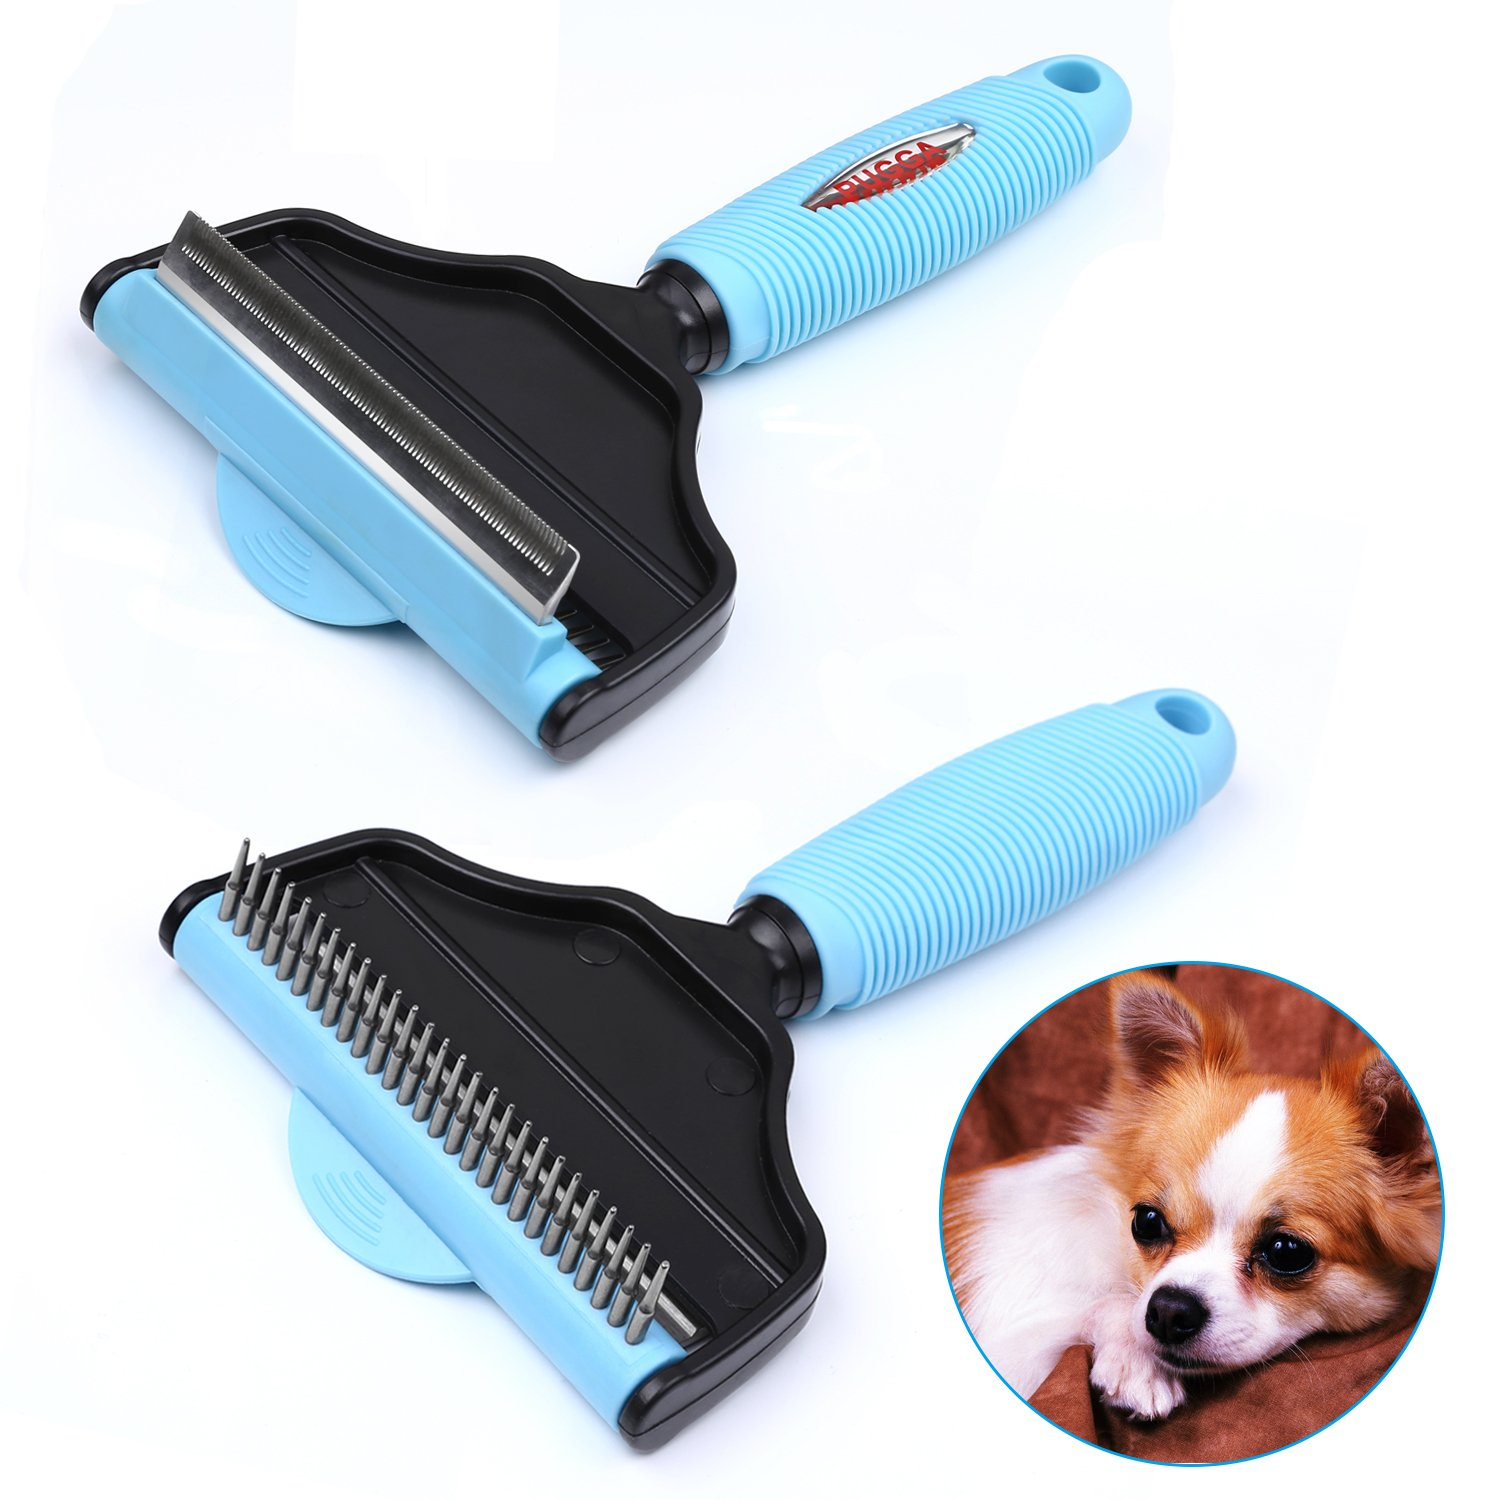 PEDY Pets Trimming Tool and Deshedding,2 in 1 Pet Grooming Brush & Rake, for Dogs Cats